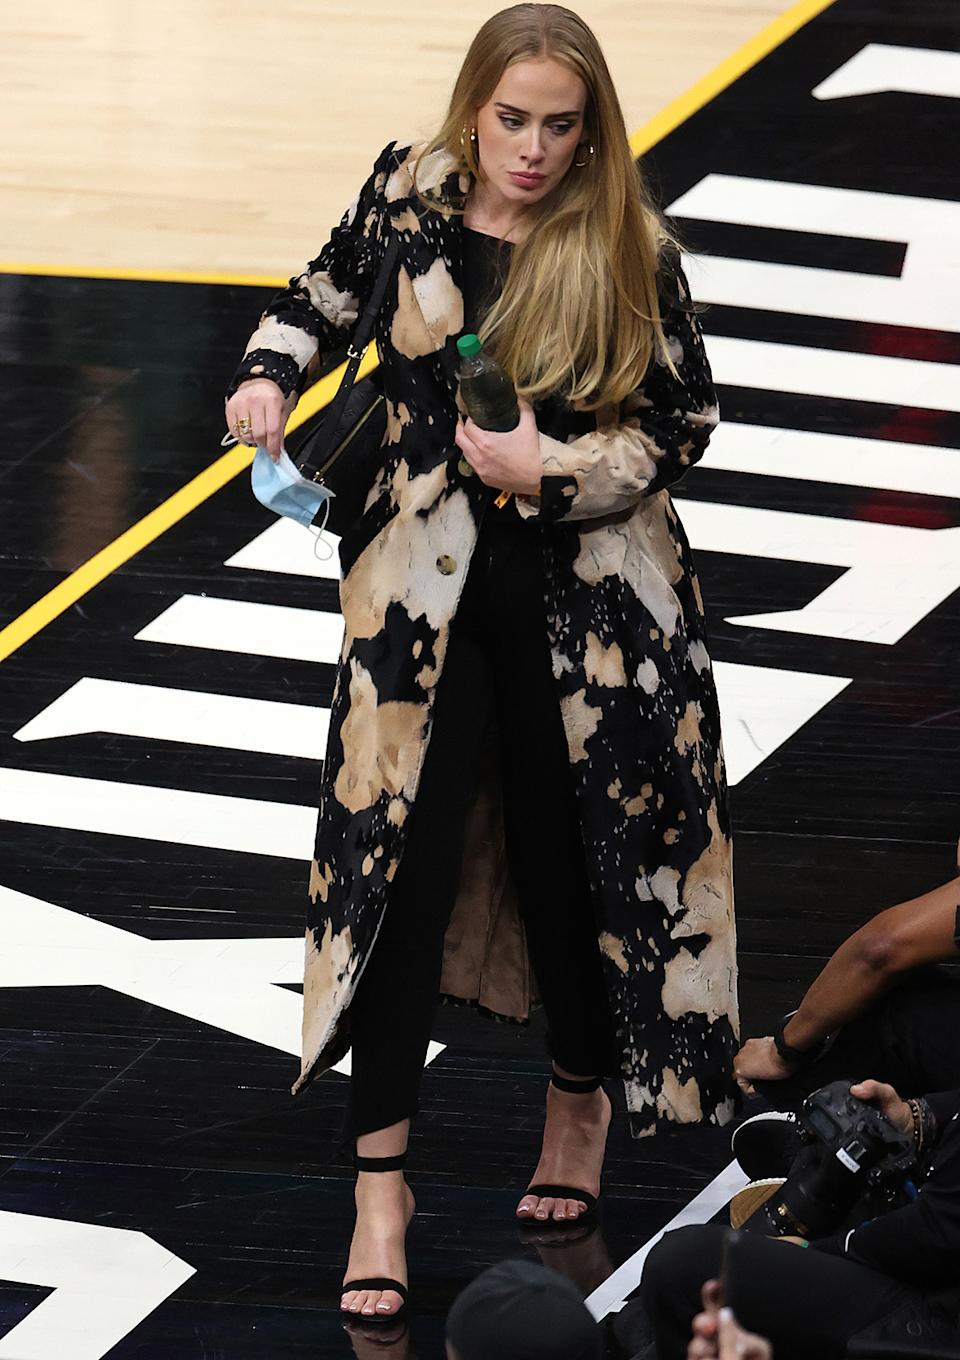 Adele at the NBA finals